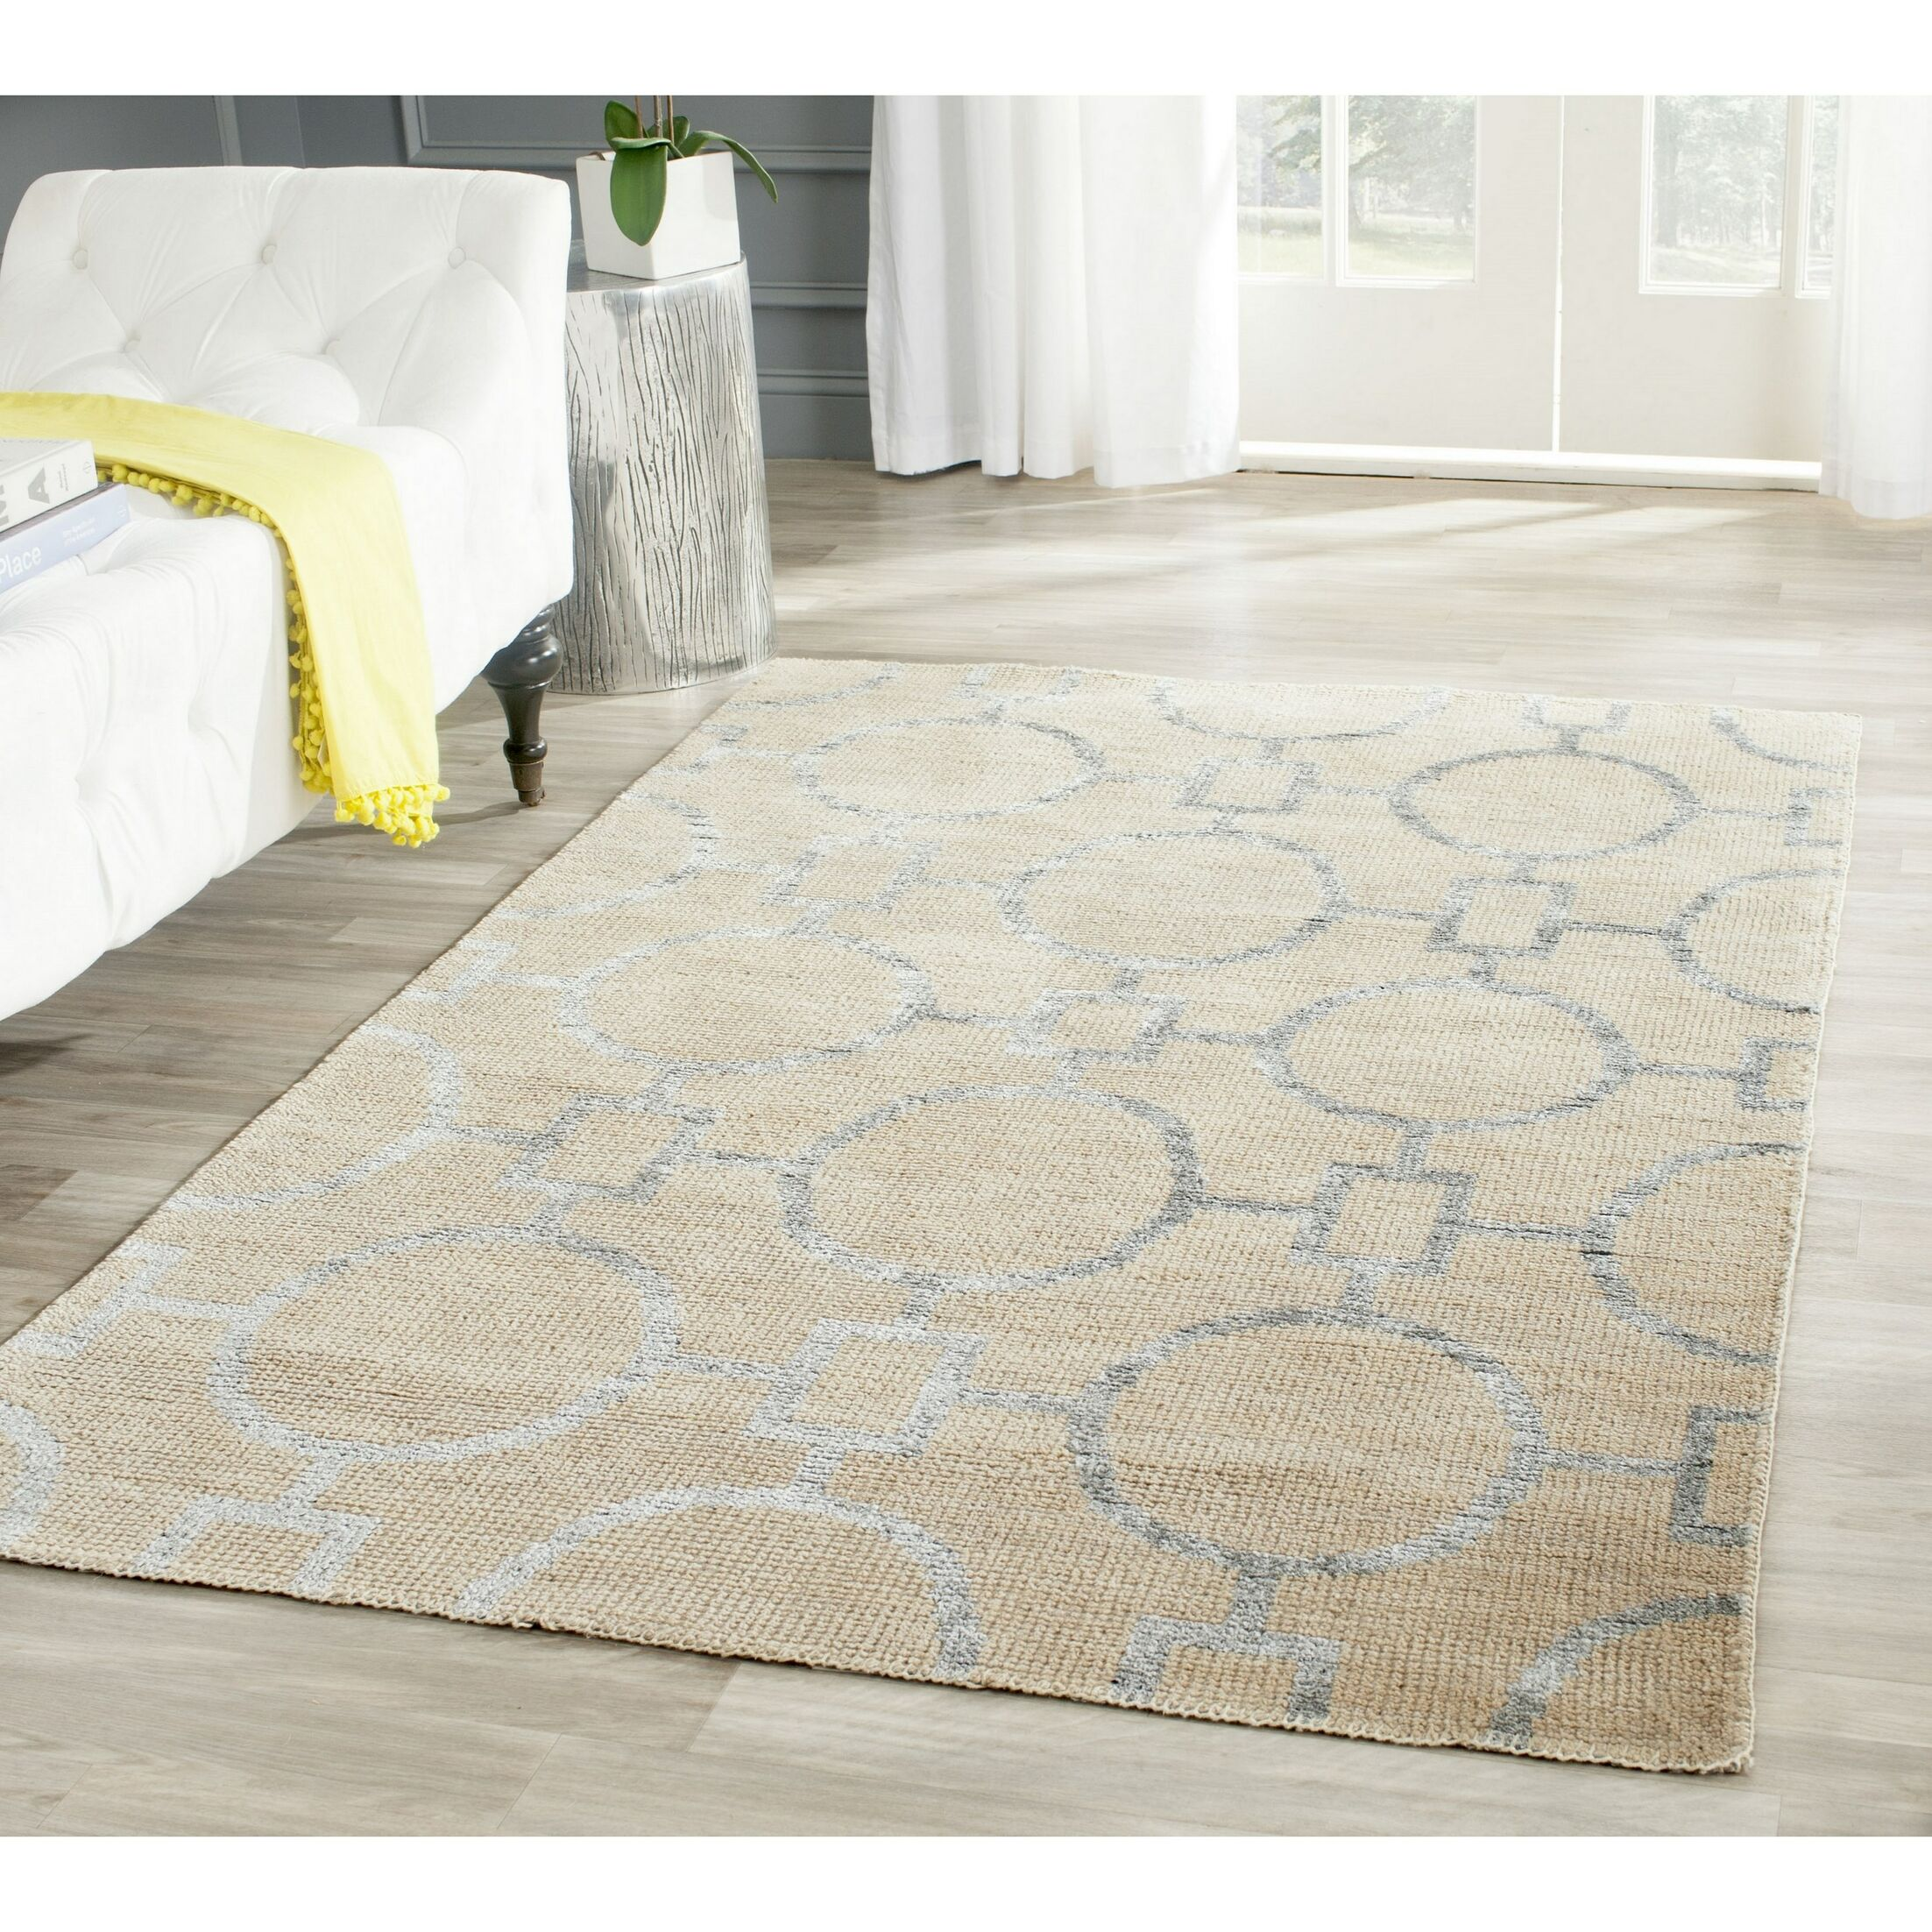 Stone Wash Hand-Woven Cotton Beige Area Rug Rug Size: Rectangle 8' x 10'